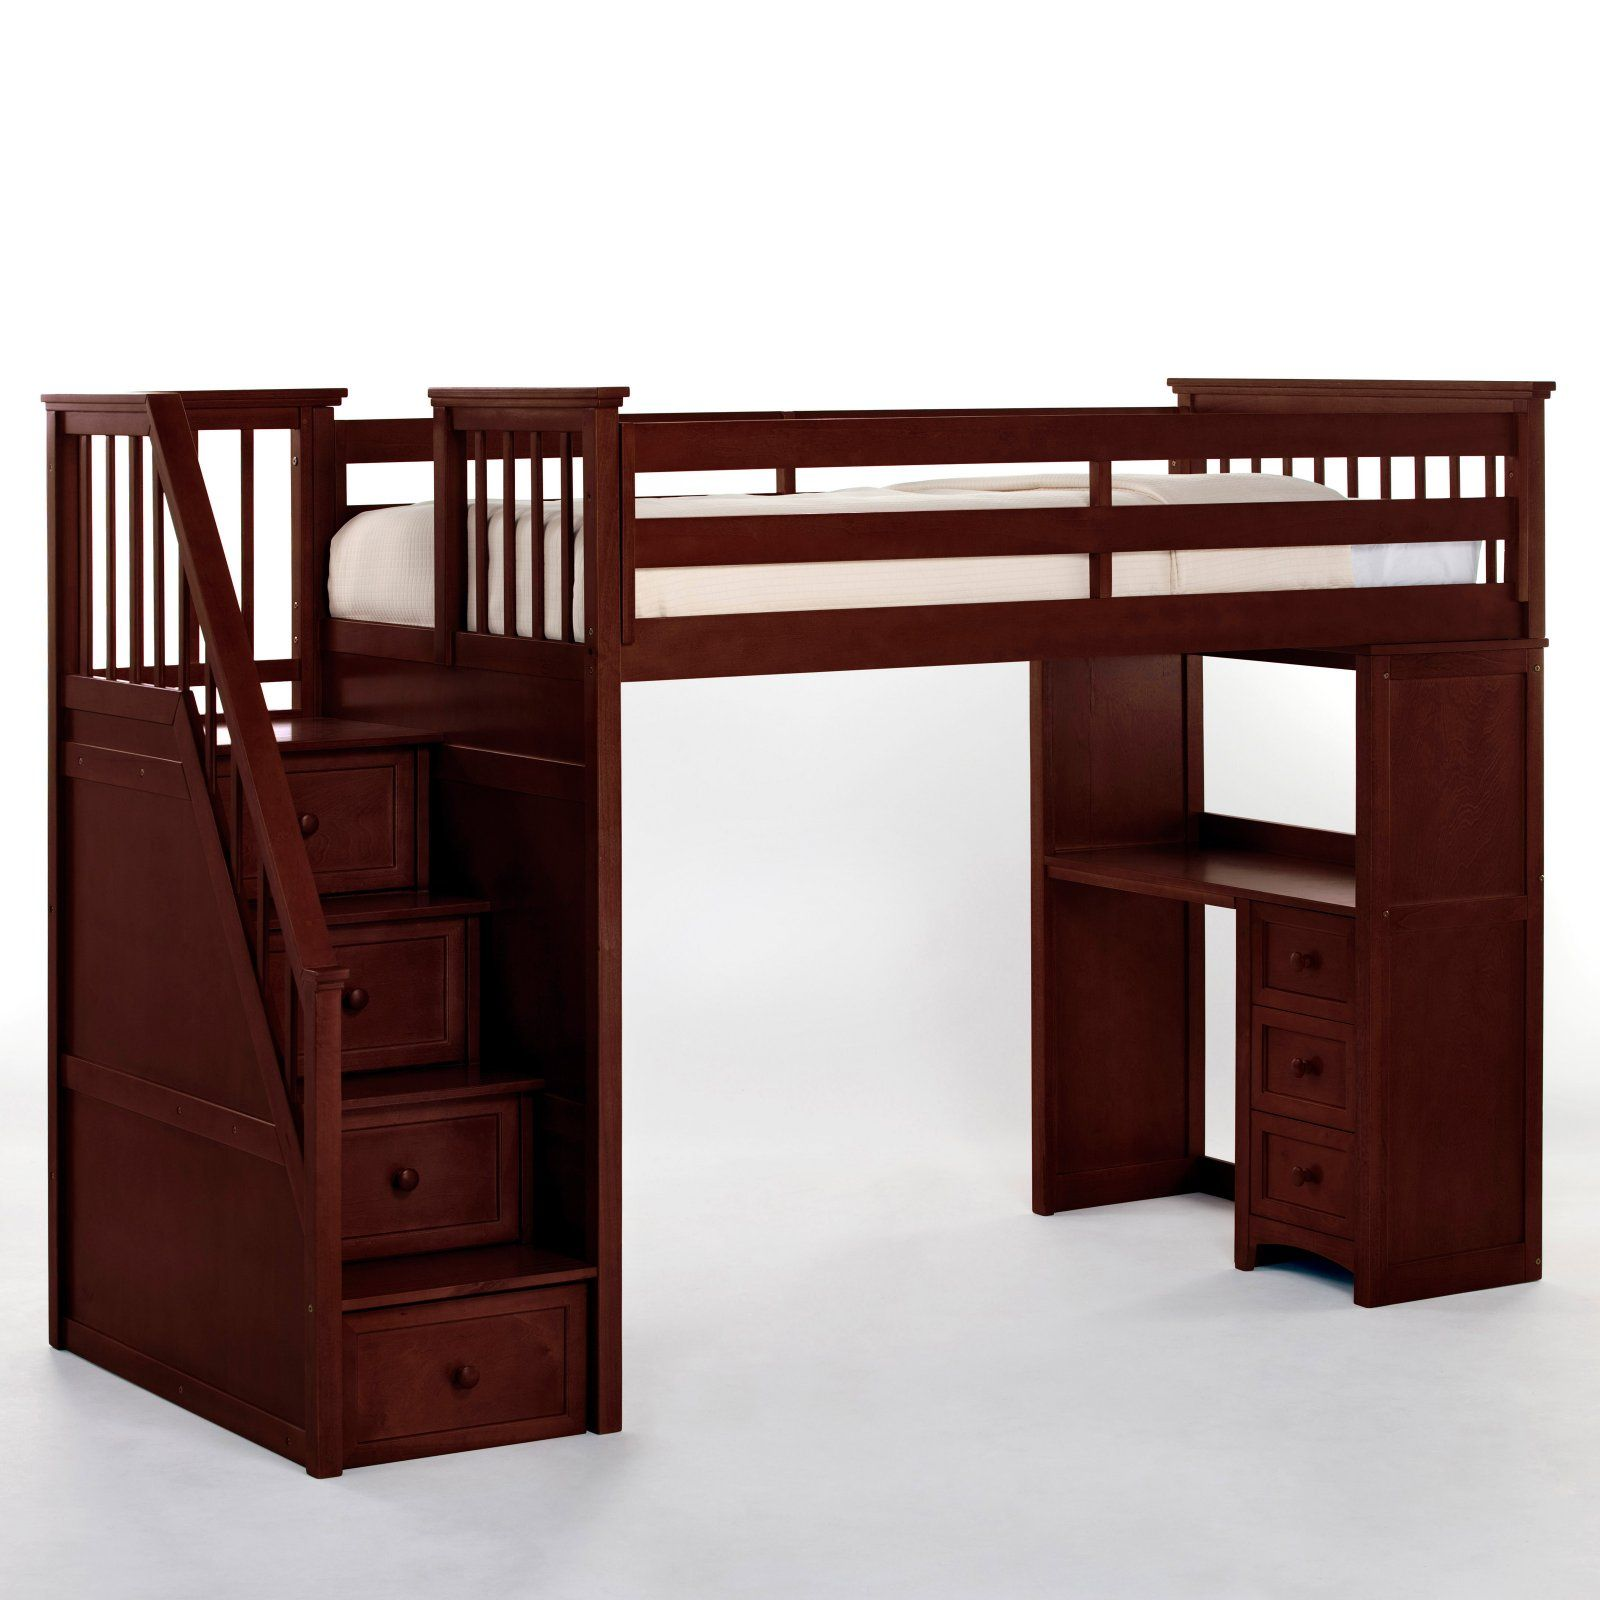 Schoolhouse Stairway Loft Bed With Desk Cherry Loft Beds At